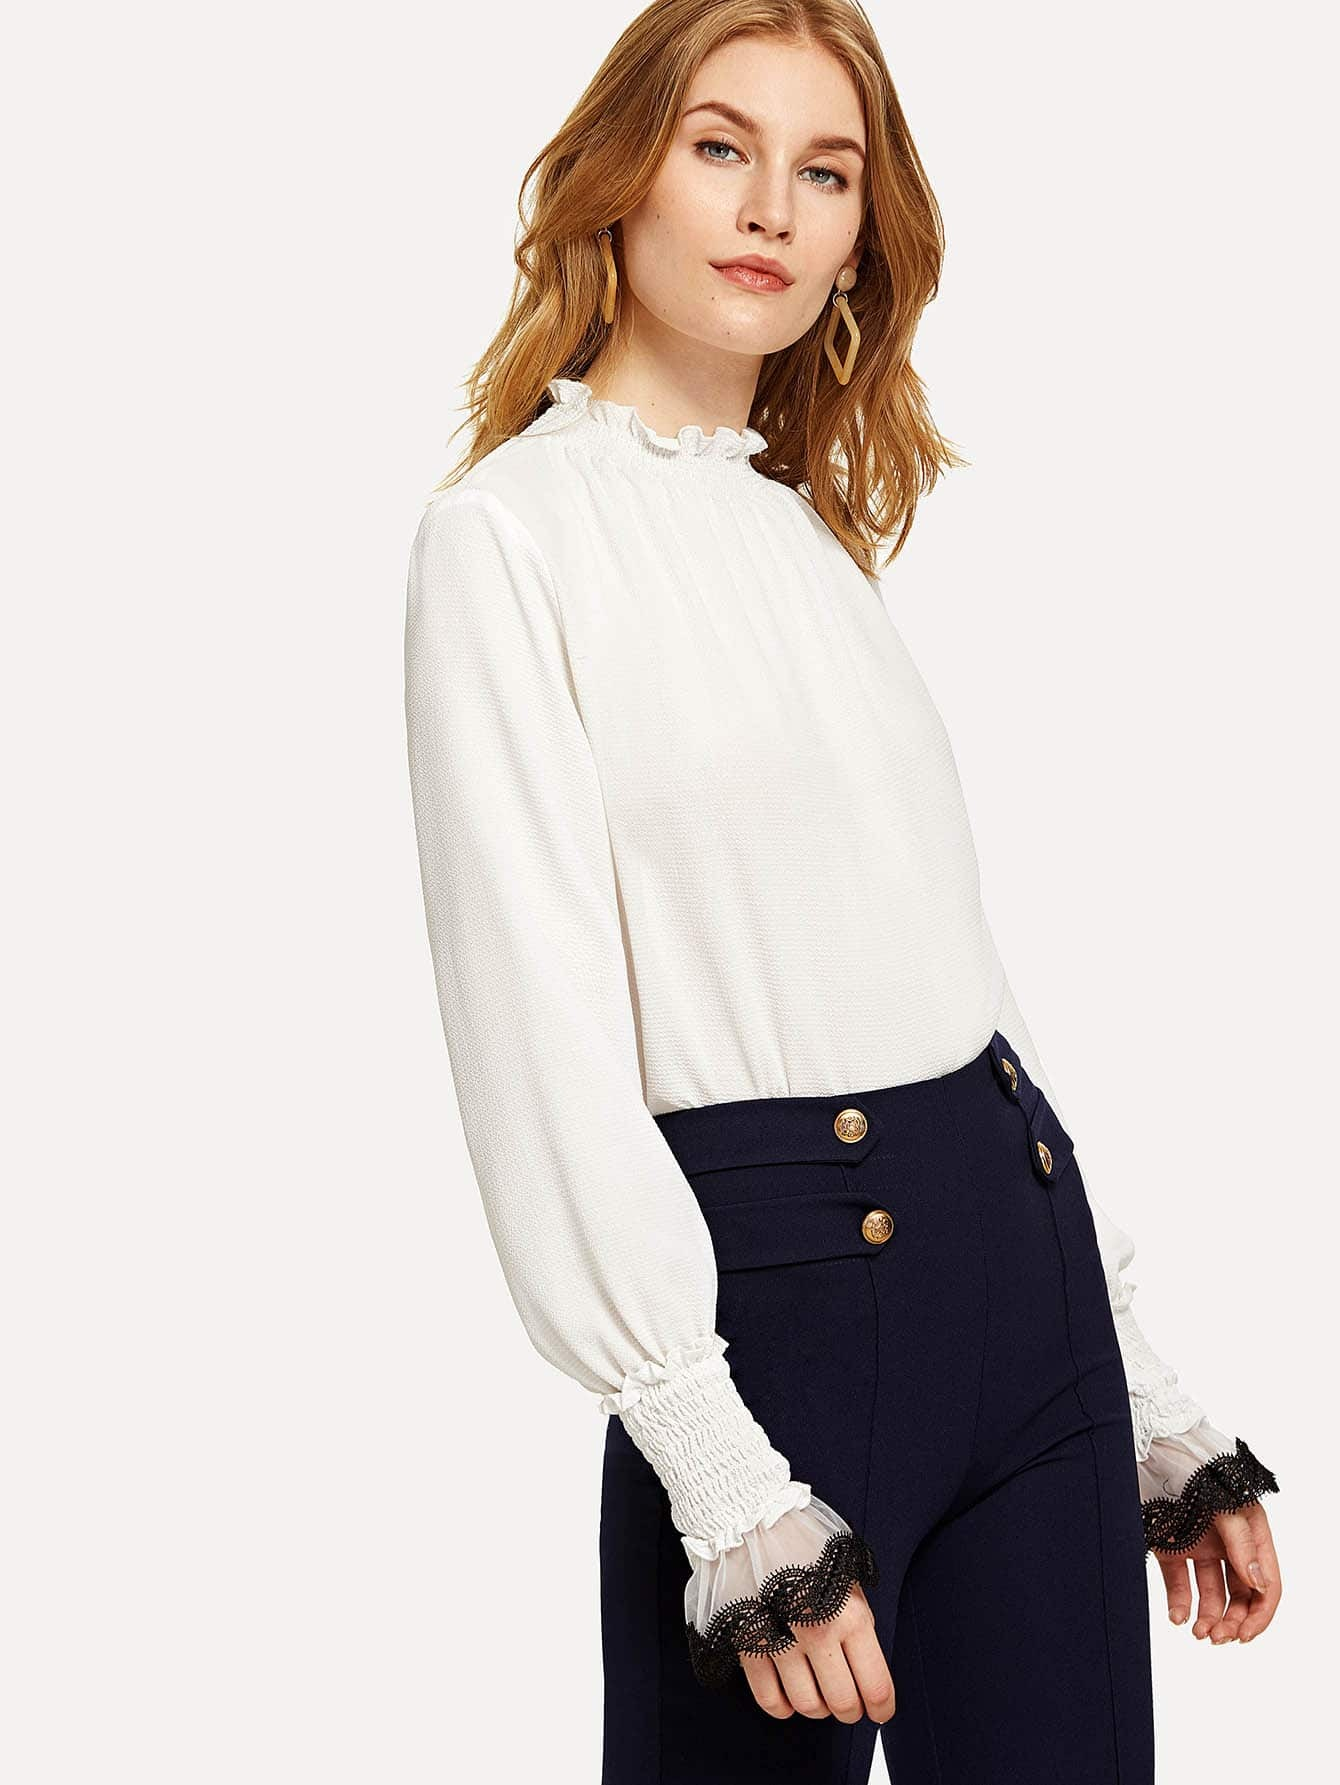 Frill Detail Smocked Neck And Cuff Top sheer dotted blouse with smocked detail